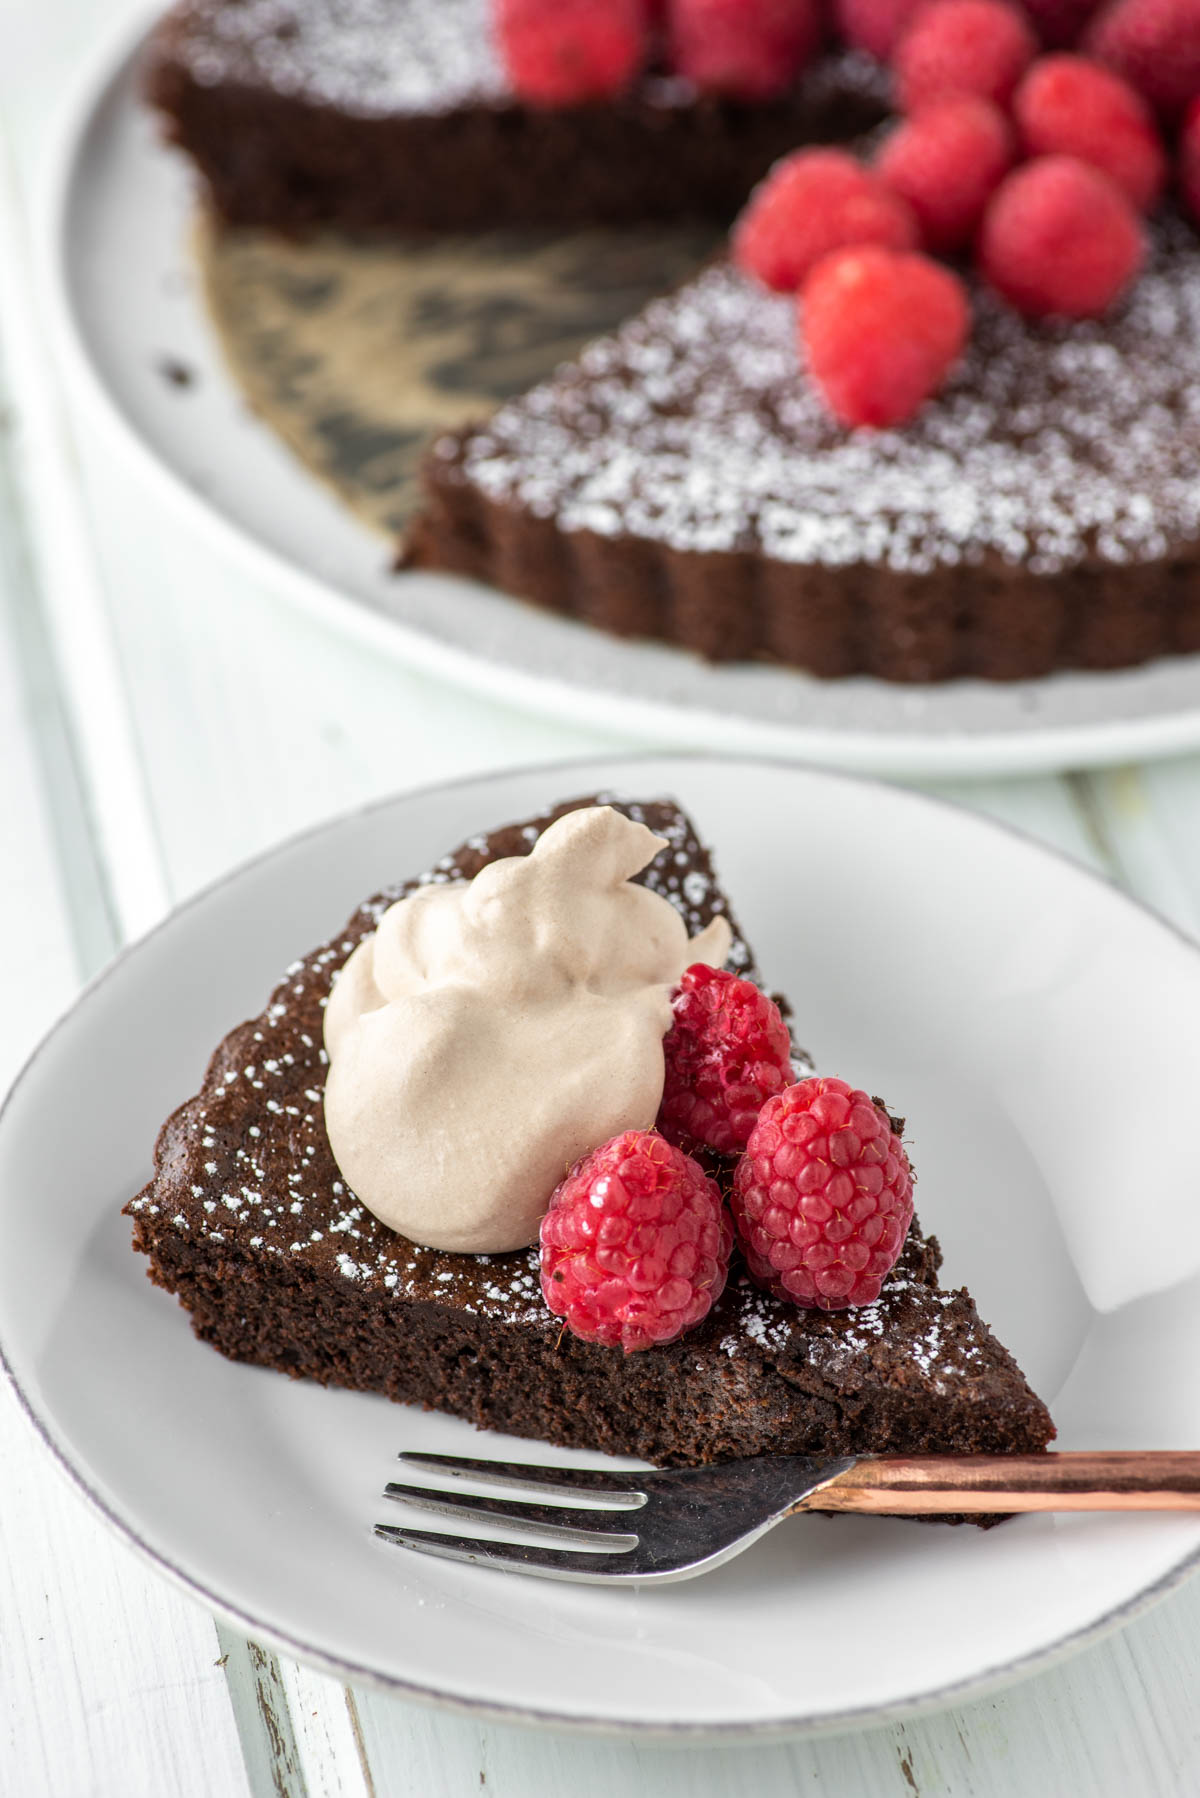 slice of flourless chocolate cake with raspberries and whipped cream on white plate